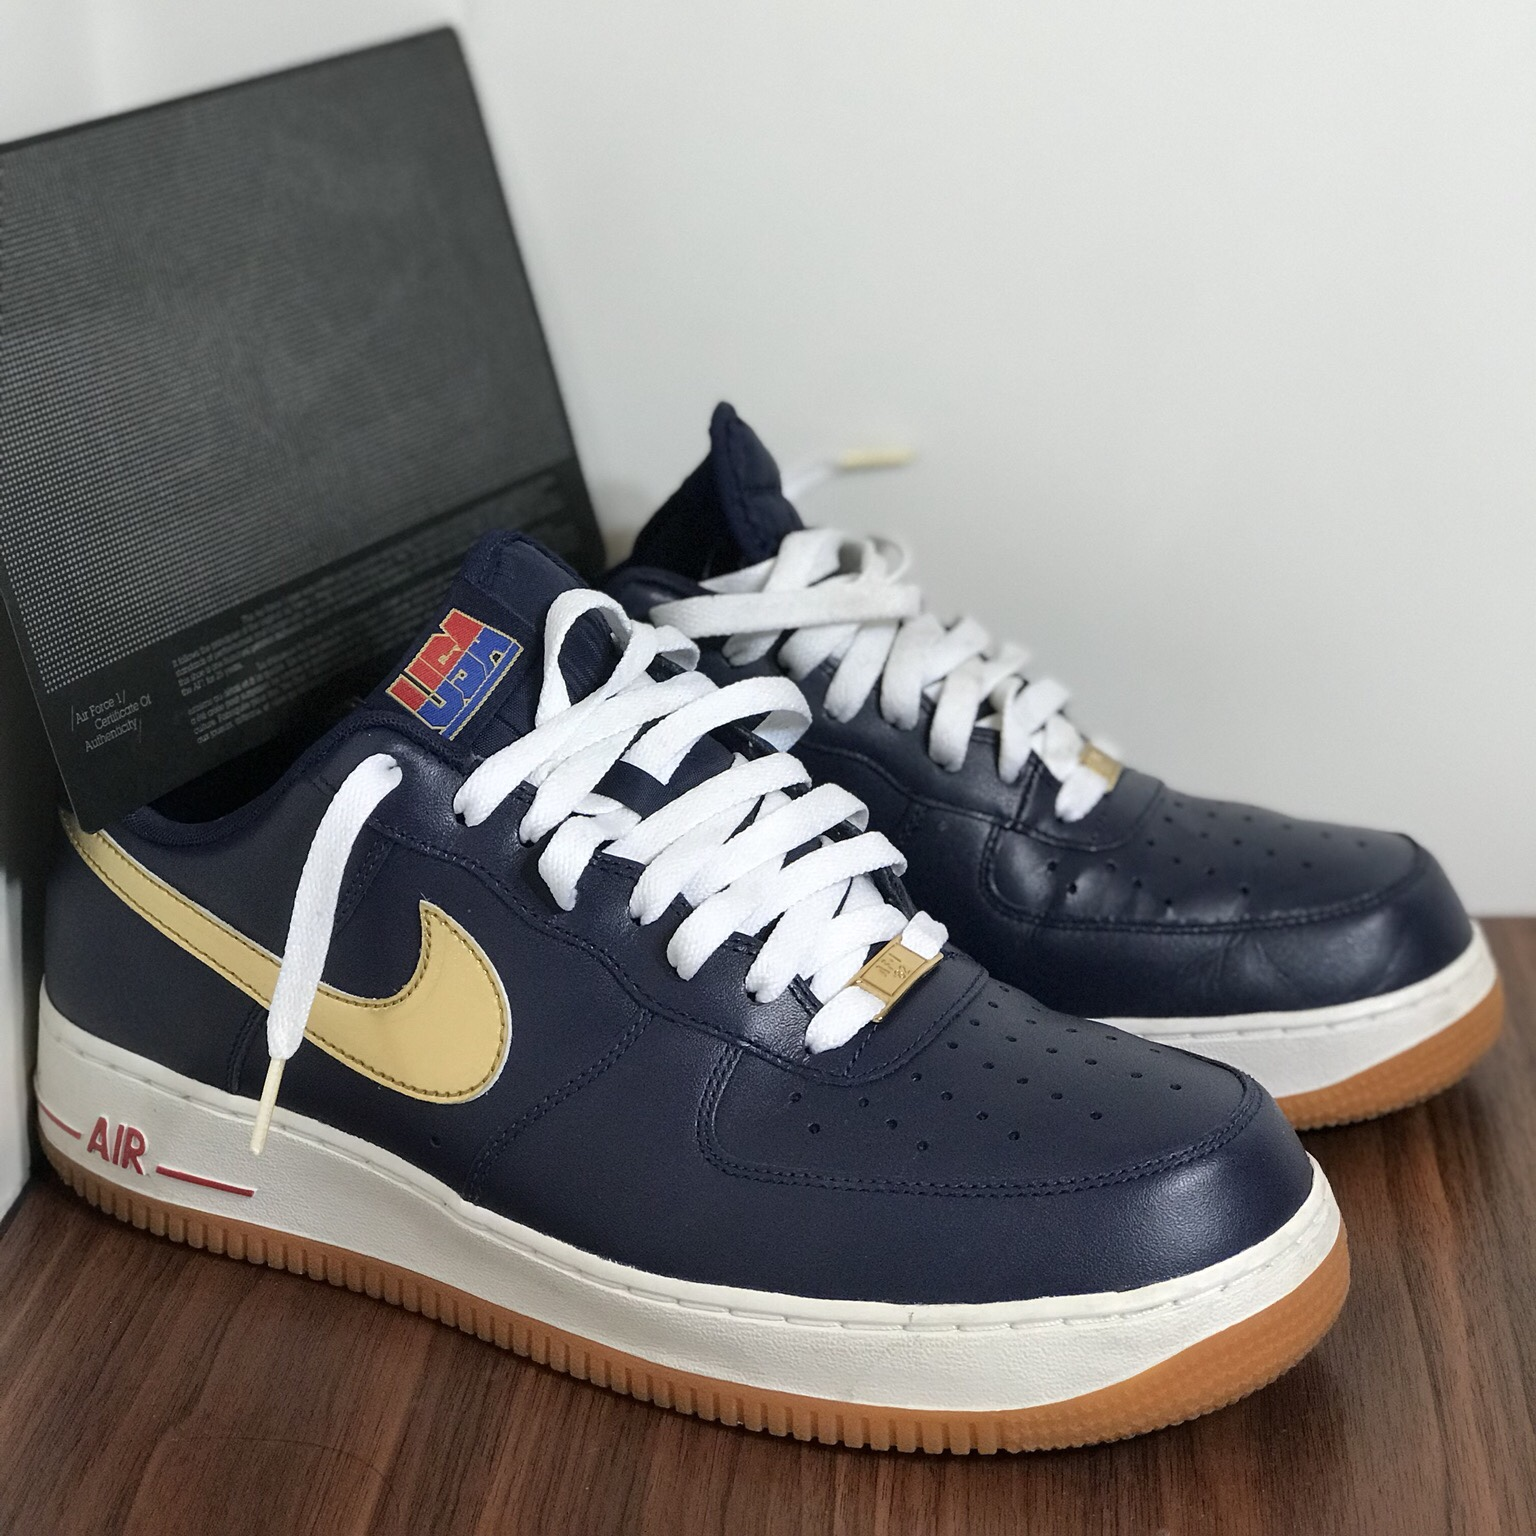 7f0747c2f3862 USA 2012 Olympic Dream Team Nike Af1 Low. WORN  Mens size - Depop